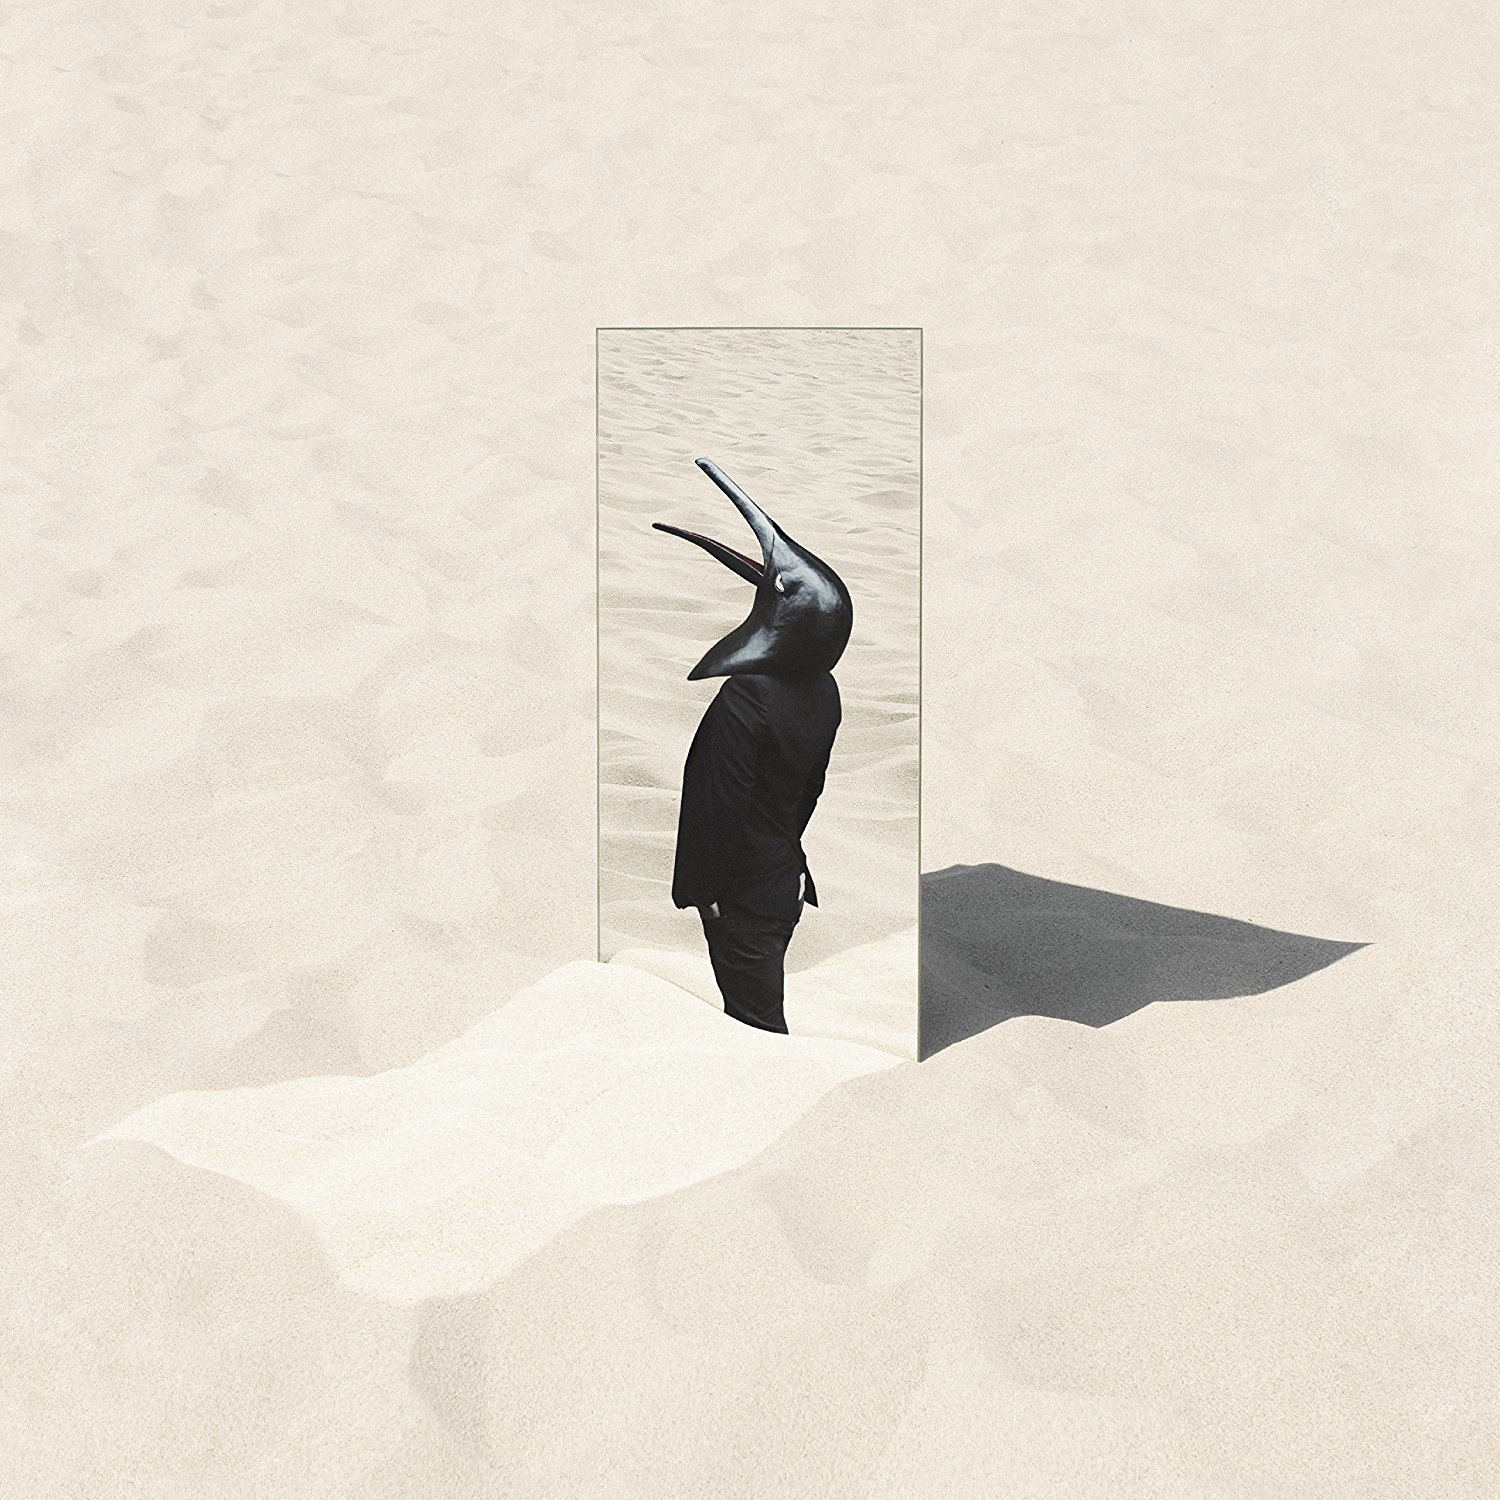 The Imperfect Sea by Penguin Cafe image